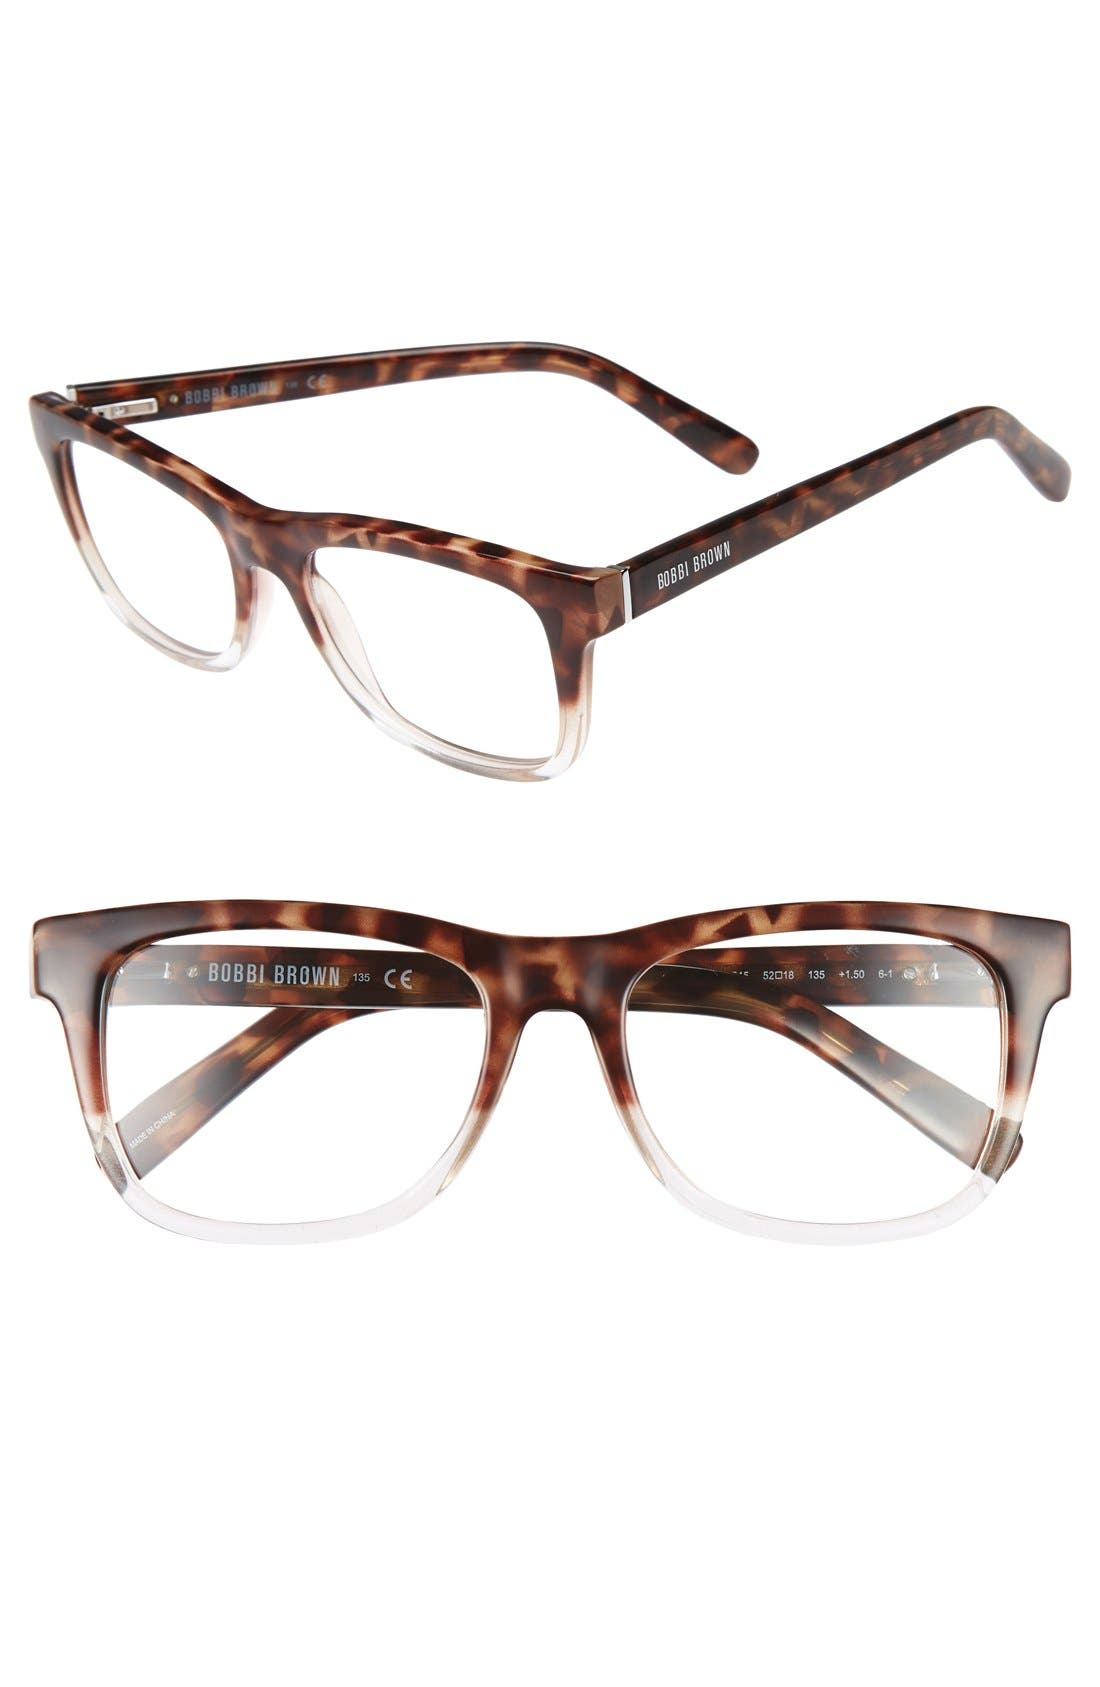 Bobbi Brown 'The Bedford' 52mm Reading Glasses (2 for $88)